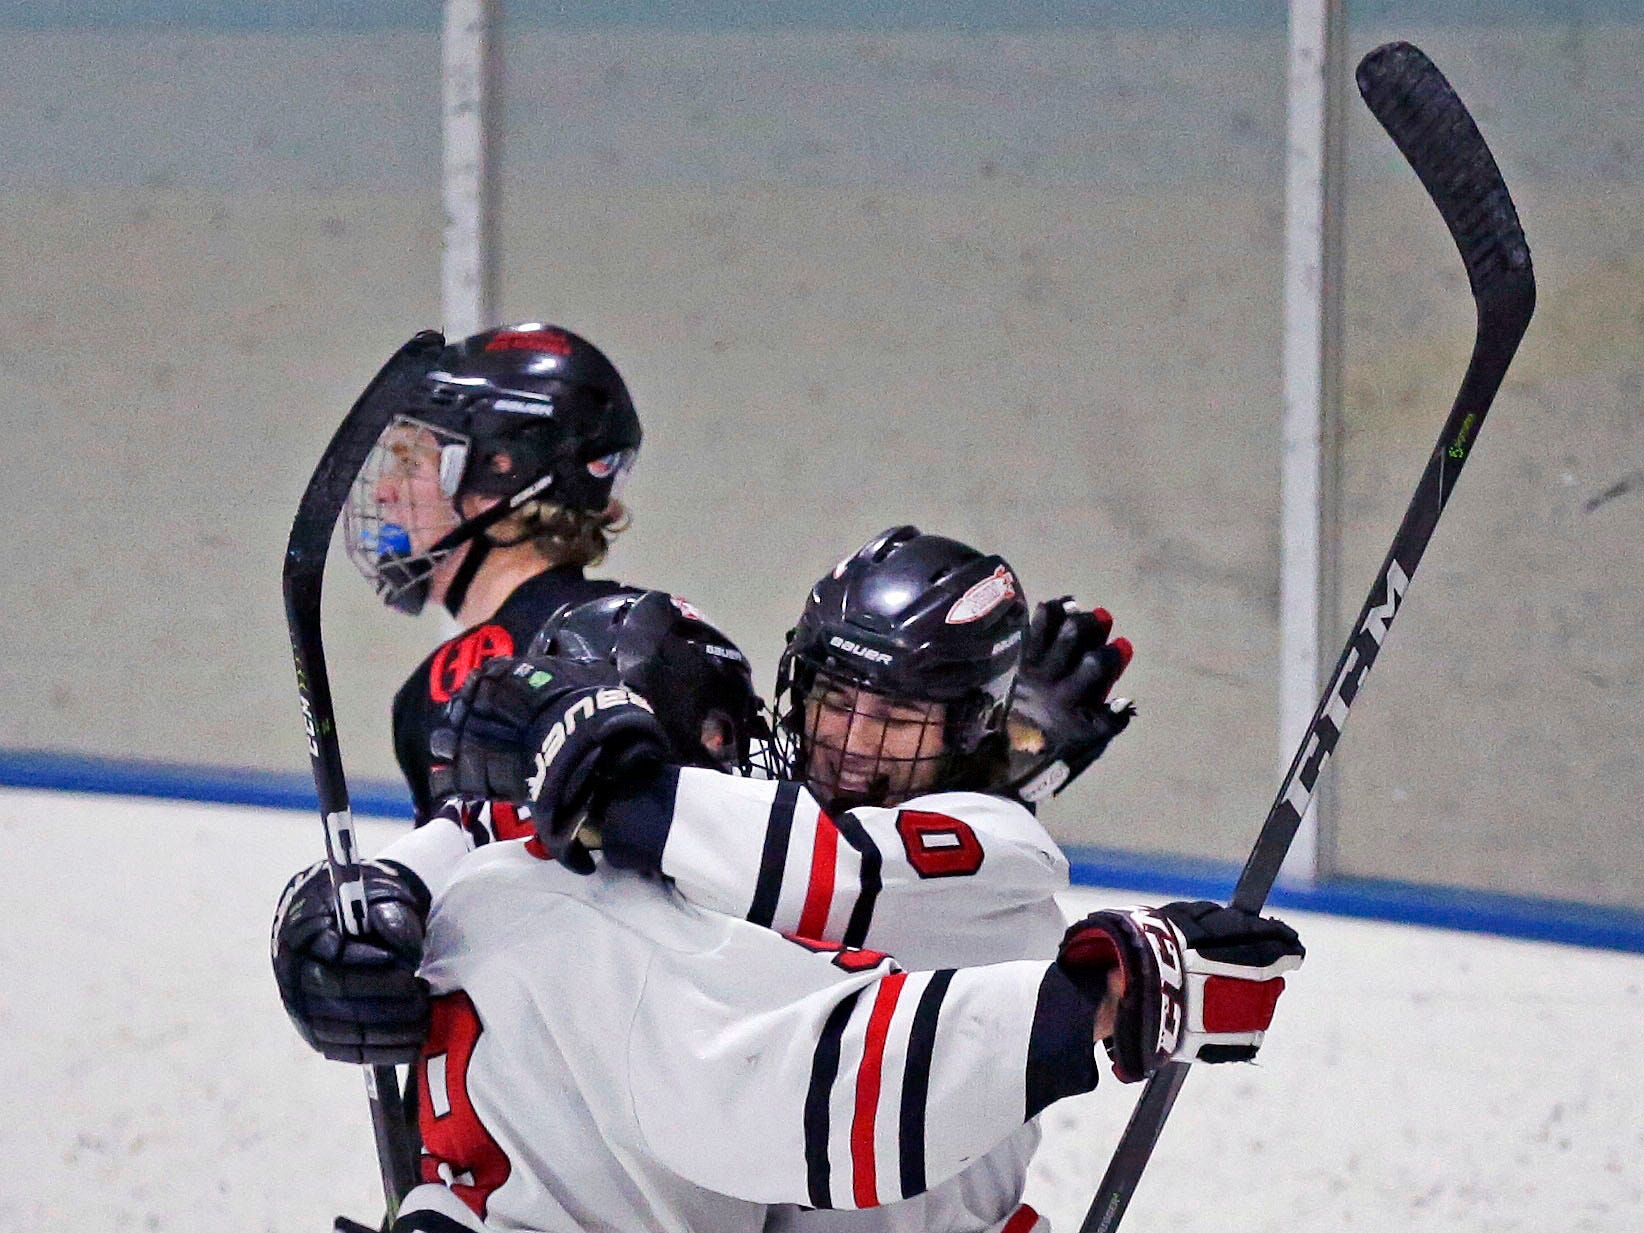 Dillon Fox and Cody Dias of Neenah/Hortonville/Menasha celebrate a goal against Oshkosh in a Badgerland Conference hockey game Tuesday, December 4, 2018, at Tri-County Ice Arena in Fox Crossing, Wis.Ron Page/USA TODAY NETWORK-Wisconsin